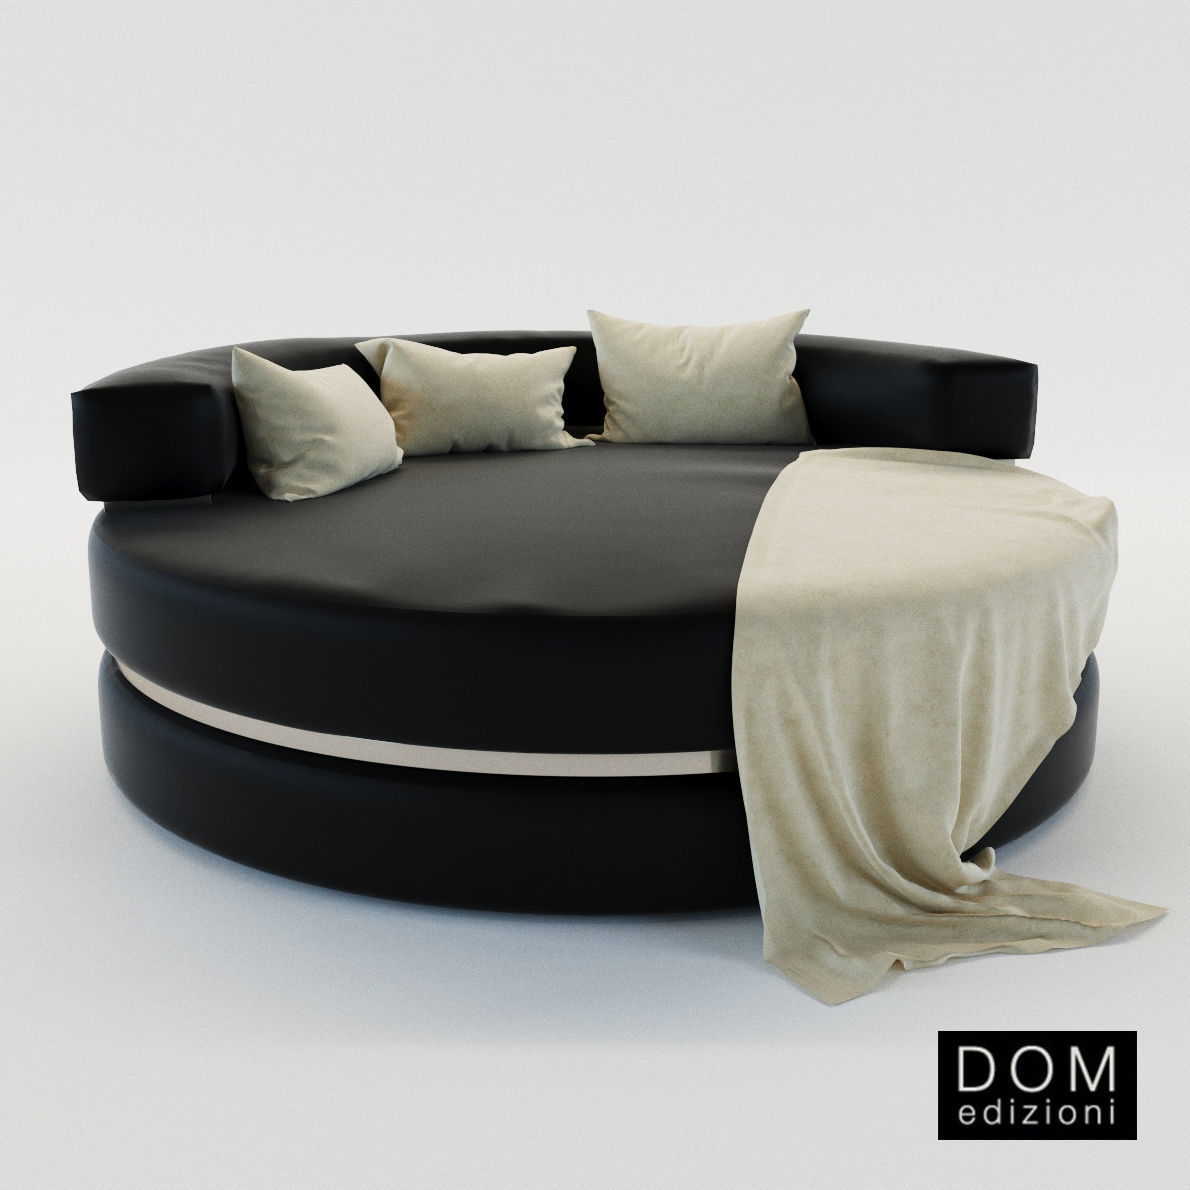 - Round Chaise Longue Loveseat - Dom Edizioni 3D CGTrader